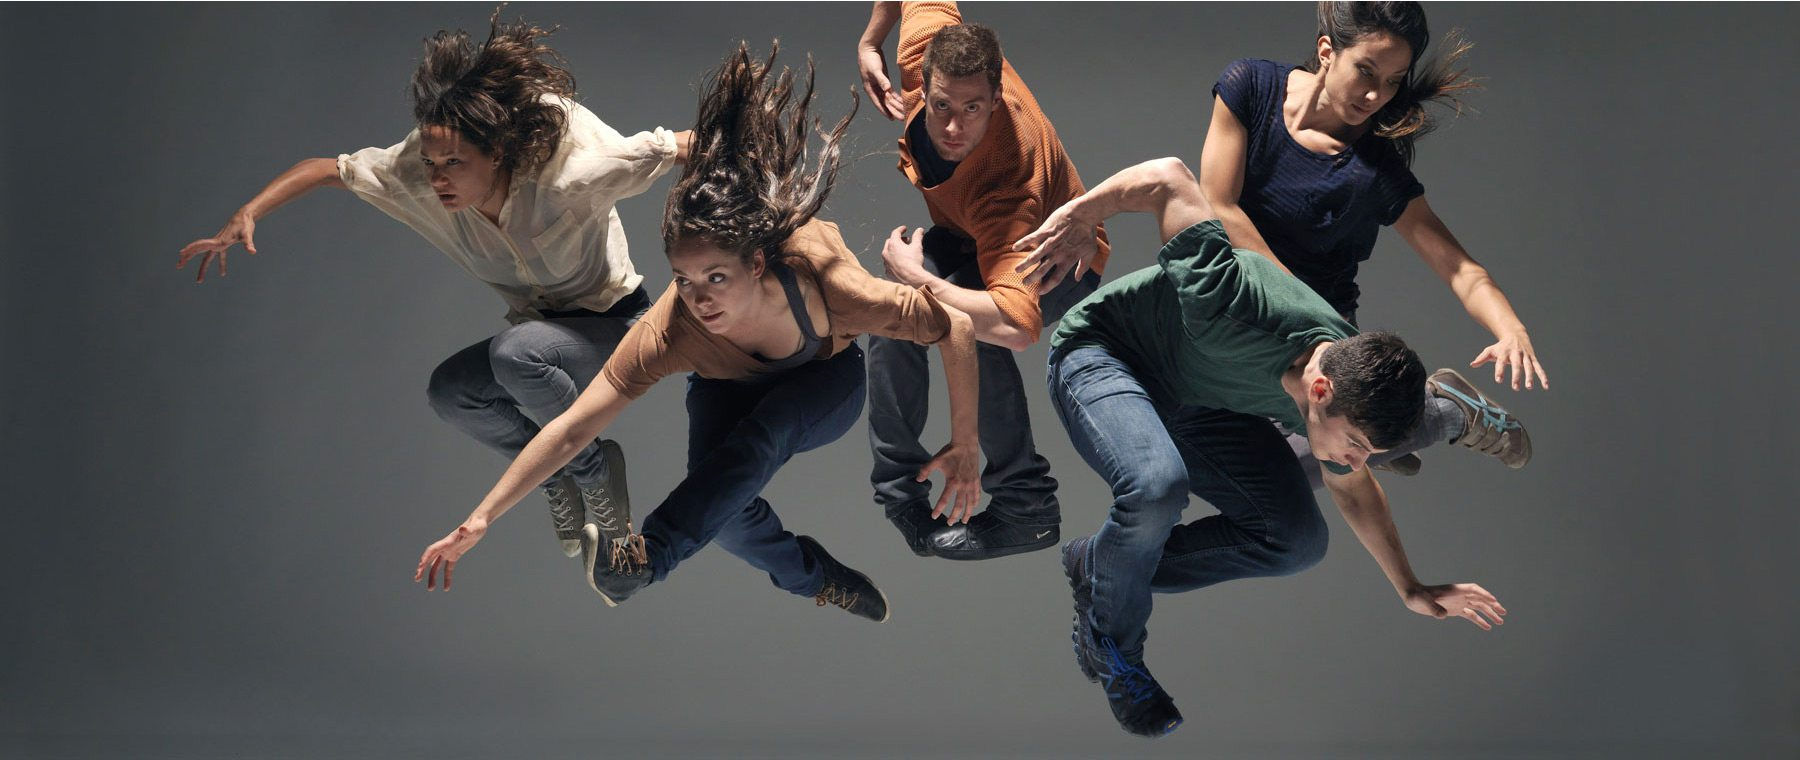 Canada Dance Festival: 3 Things You Need to Know